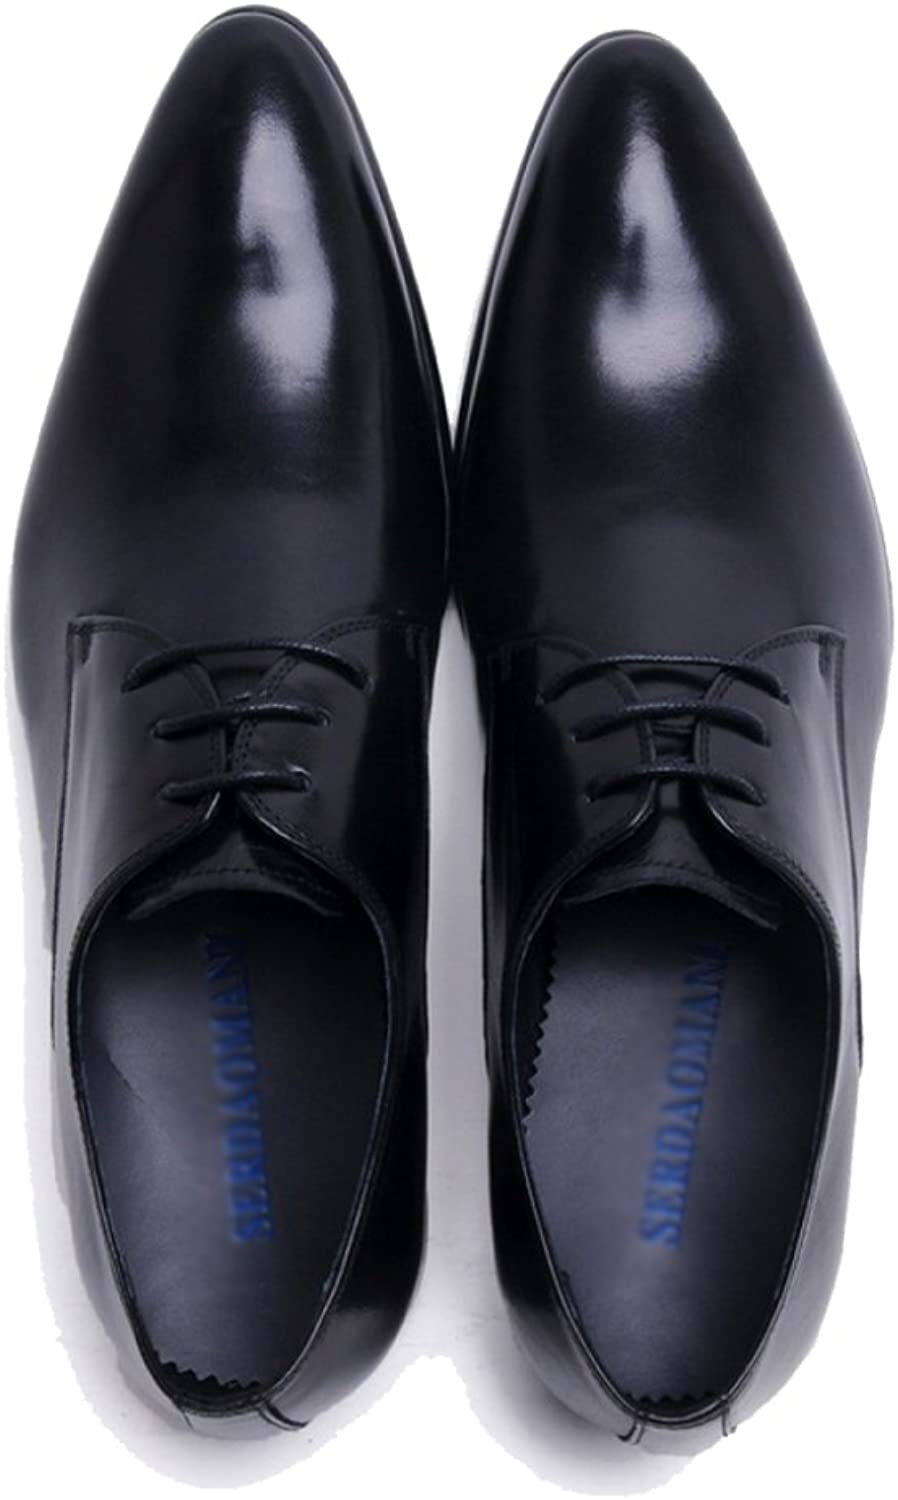 SHANHEYY Classic Brogues Men's Real Leather shoes Derby Oxford Lace up Formal shoes